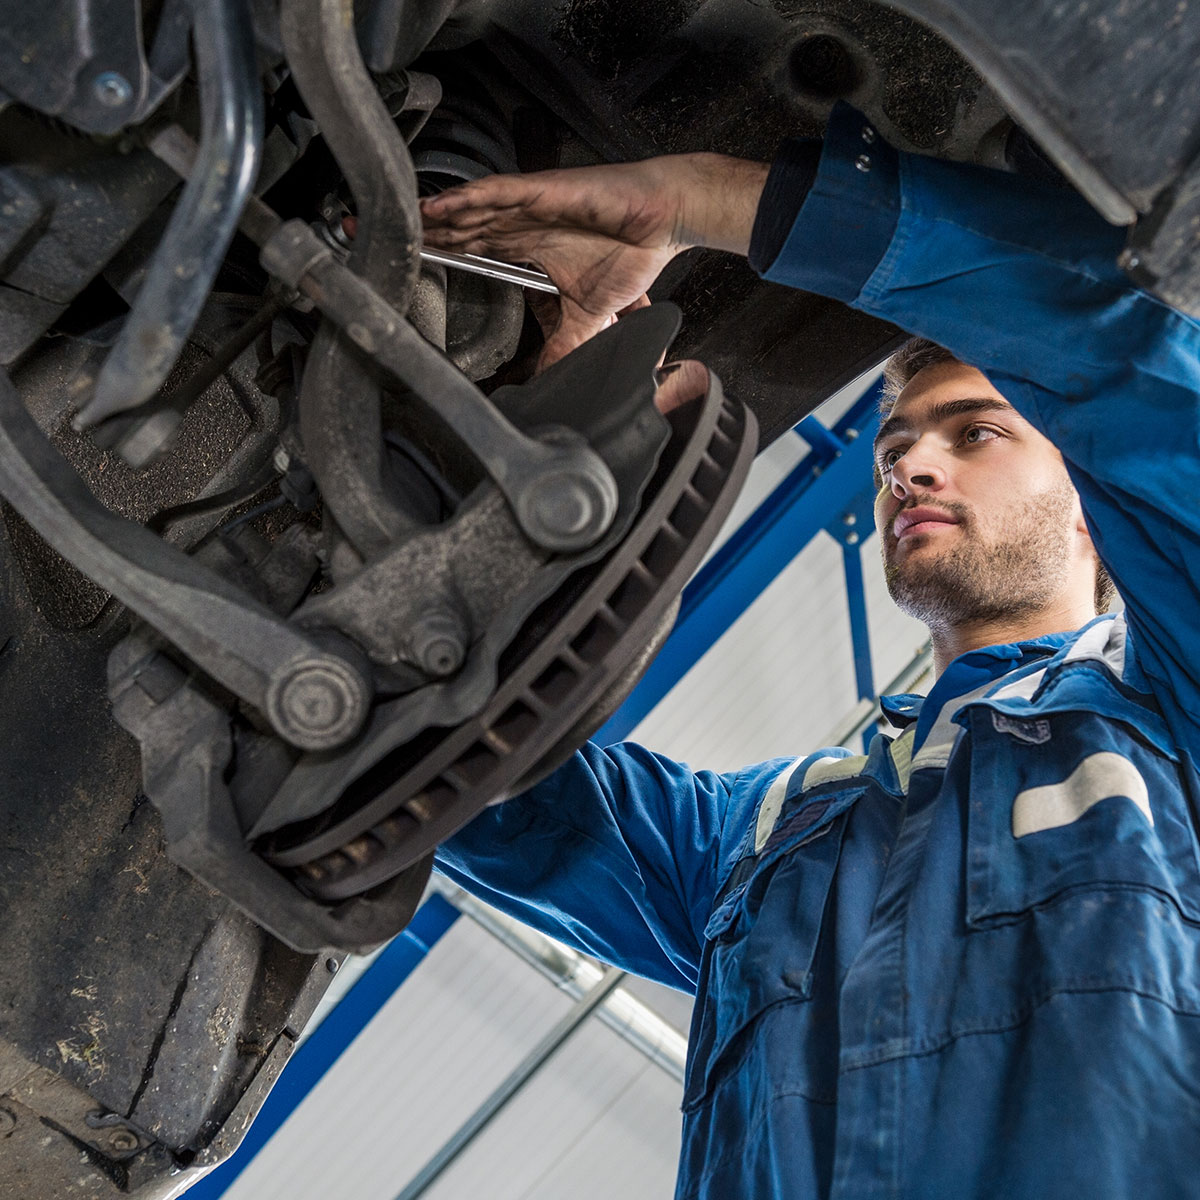 Knocking or clunking noise when driving inspection costs